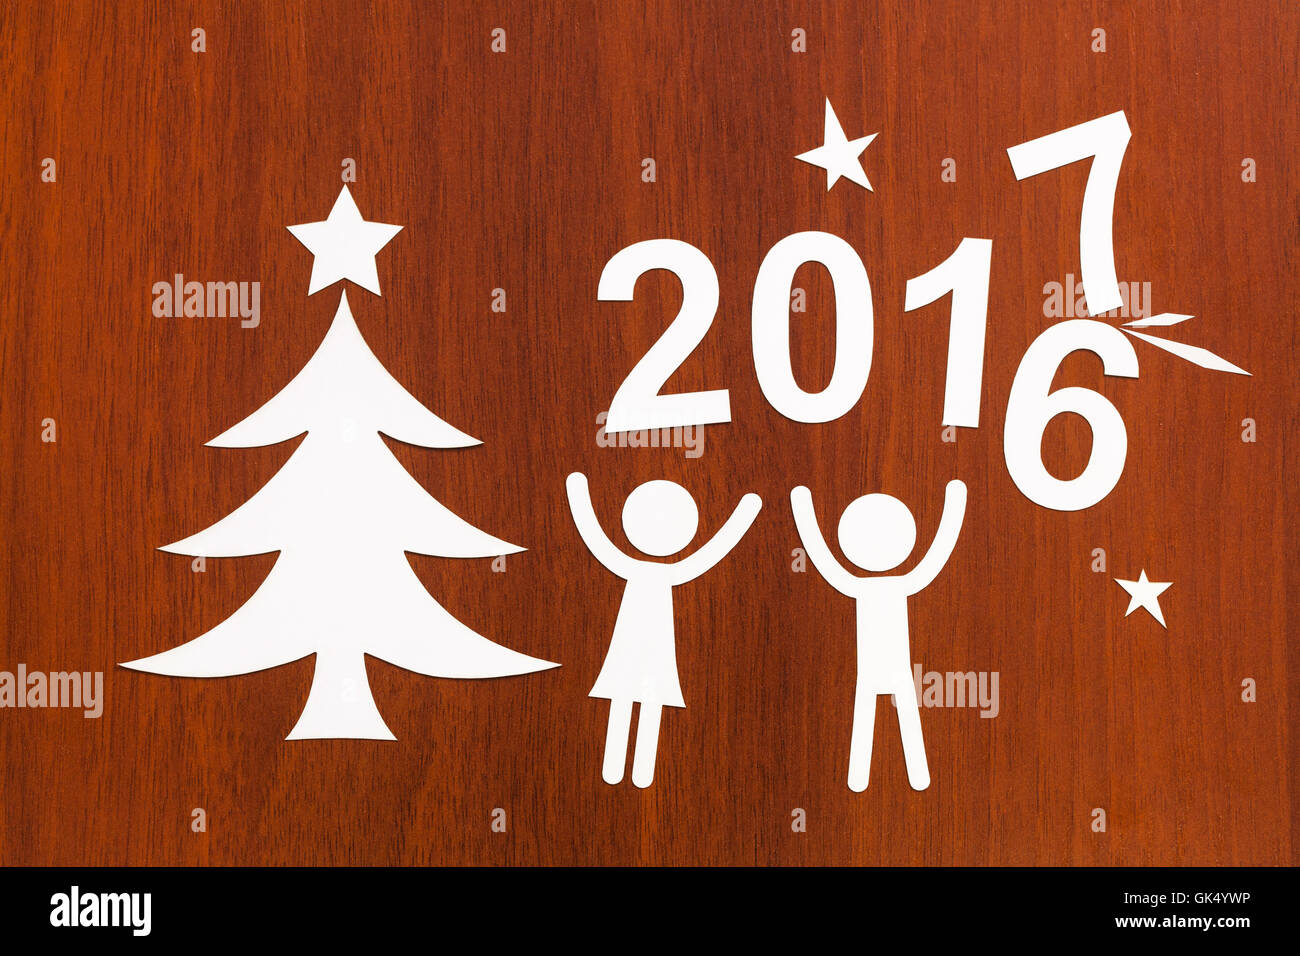 New year 2017 changes 2016. Abstract christmas conceptual image - Stock Image